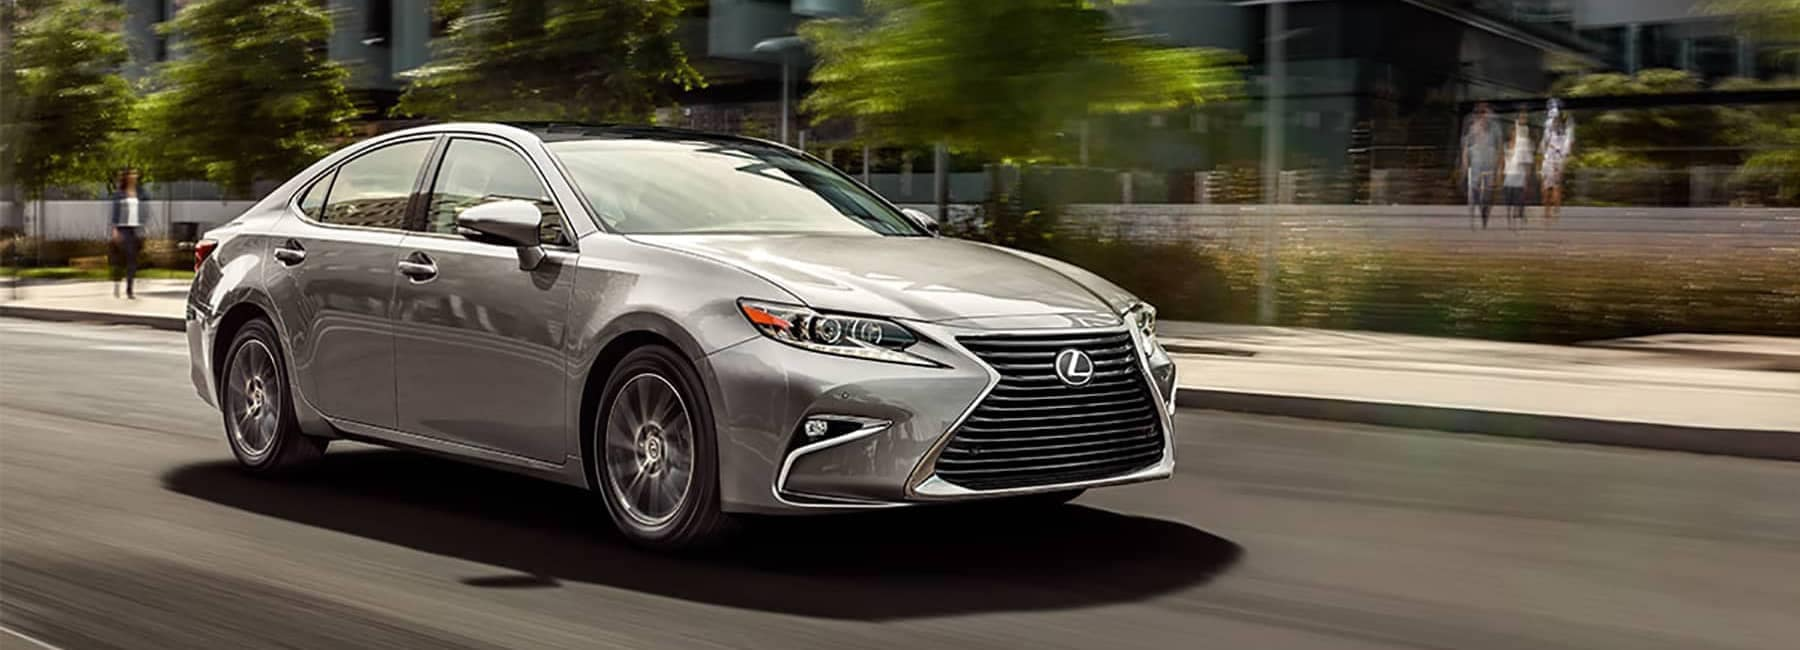 2017 Lexus ES Driving Down the Road